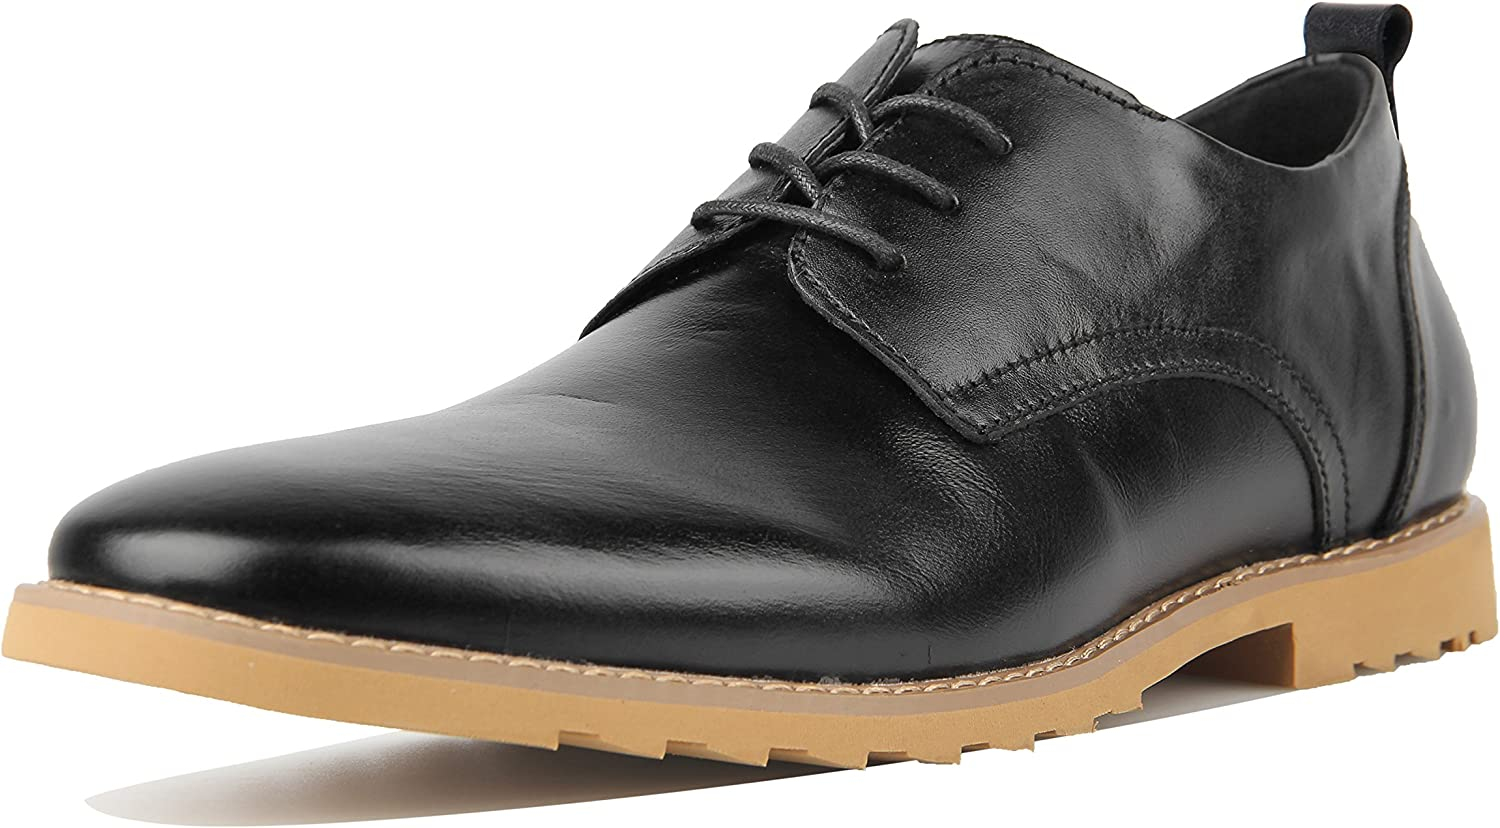 iloveSIA Men's Mesa Mall Soft Leather Casual Shoes Ranking TOP9 Business Dress Oxford B